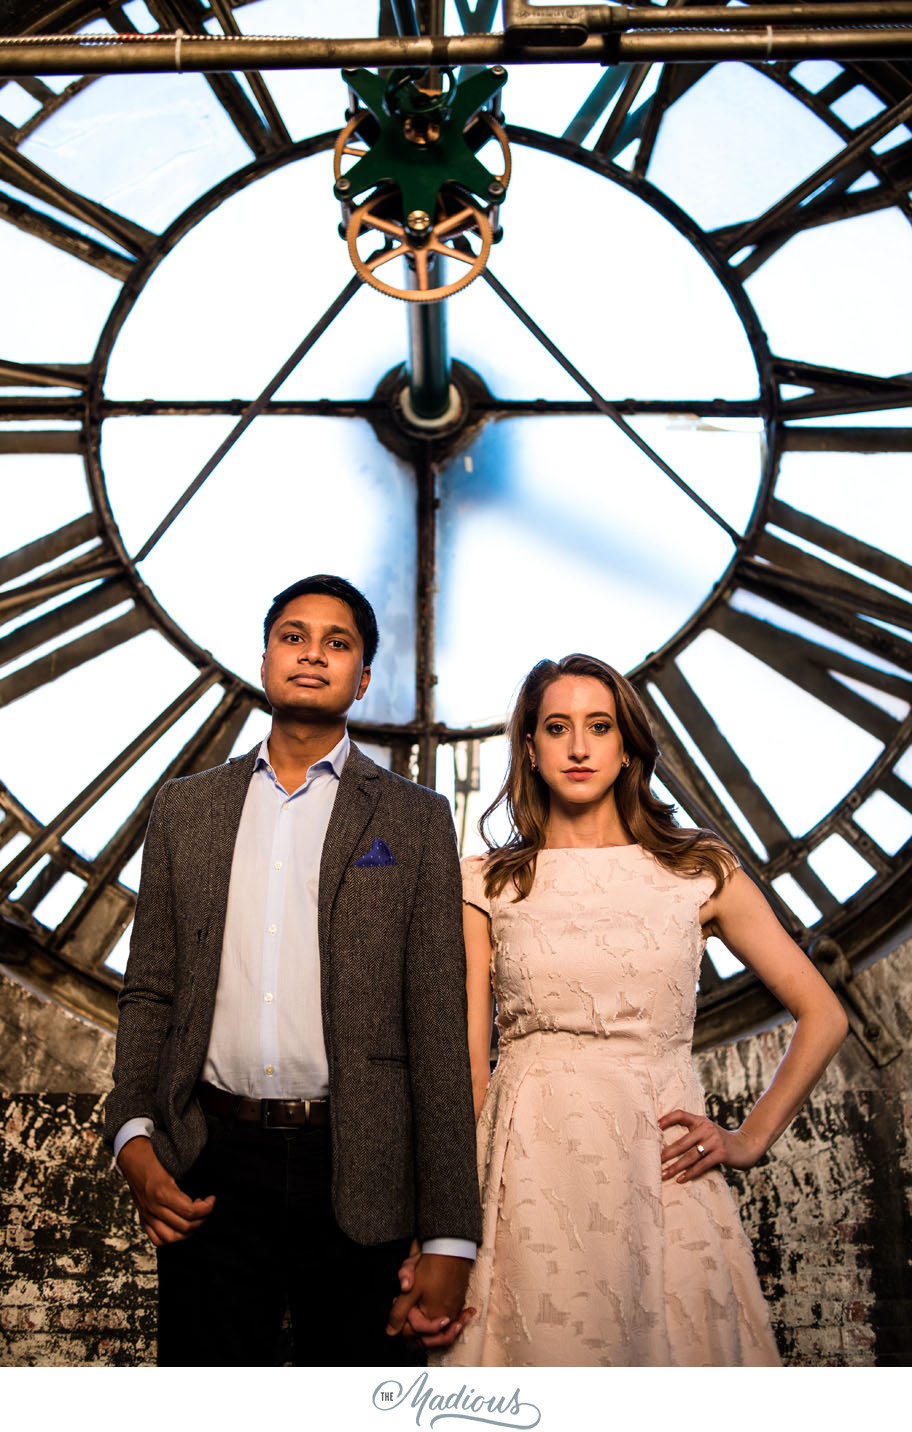 bromo seltzer arts tower baltimore engagement session 30.JPG